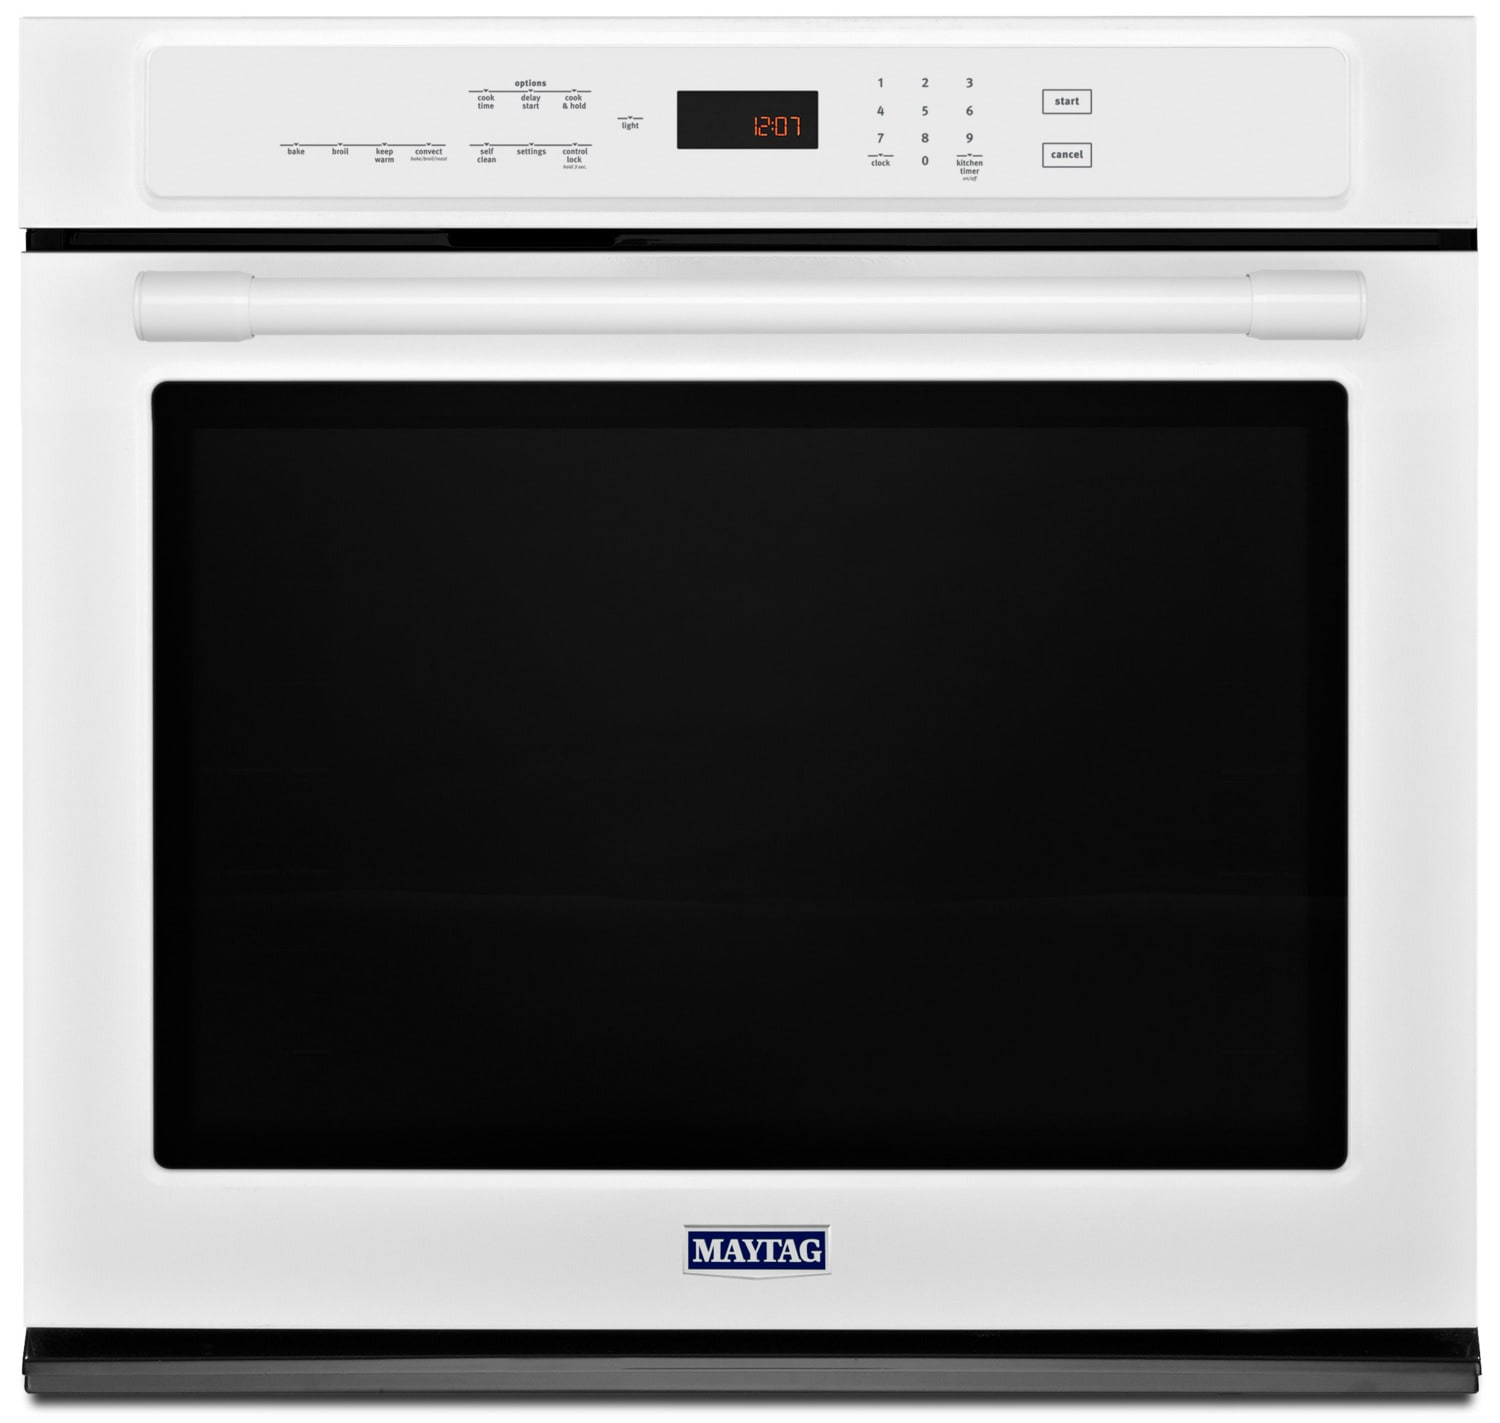 Maytag 5.0 Cu. Ft. Built-In Wall Oven – MEW9530FW